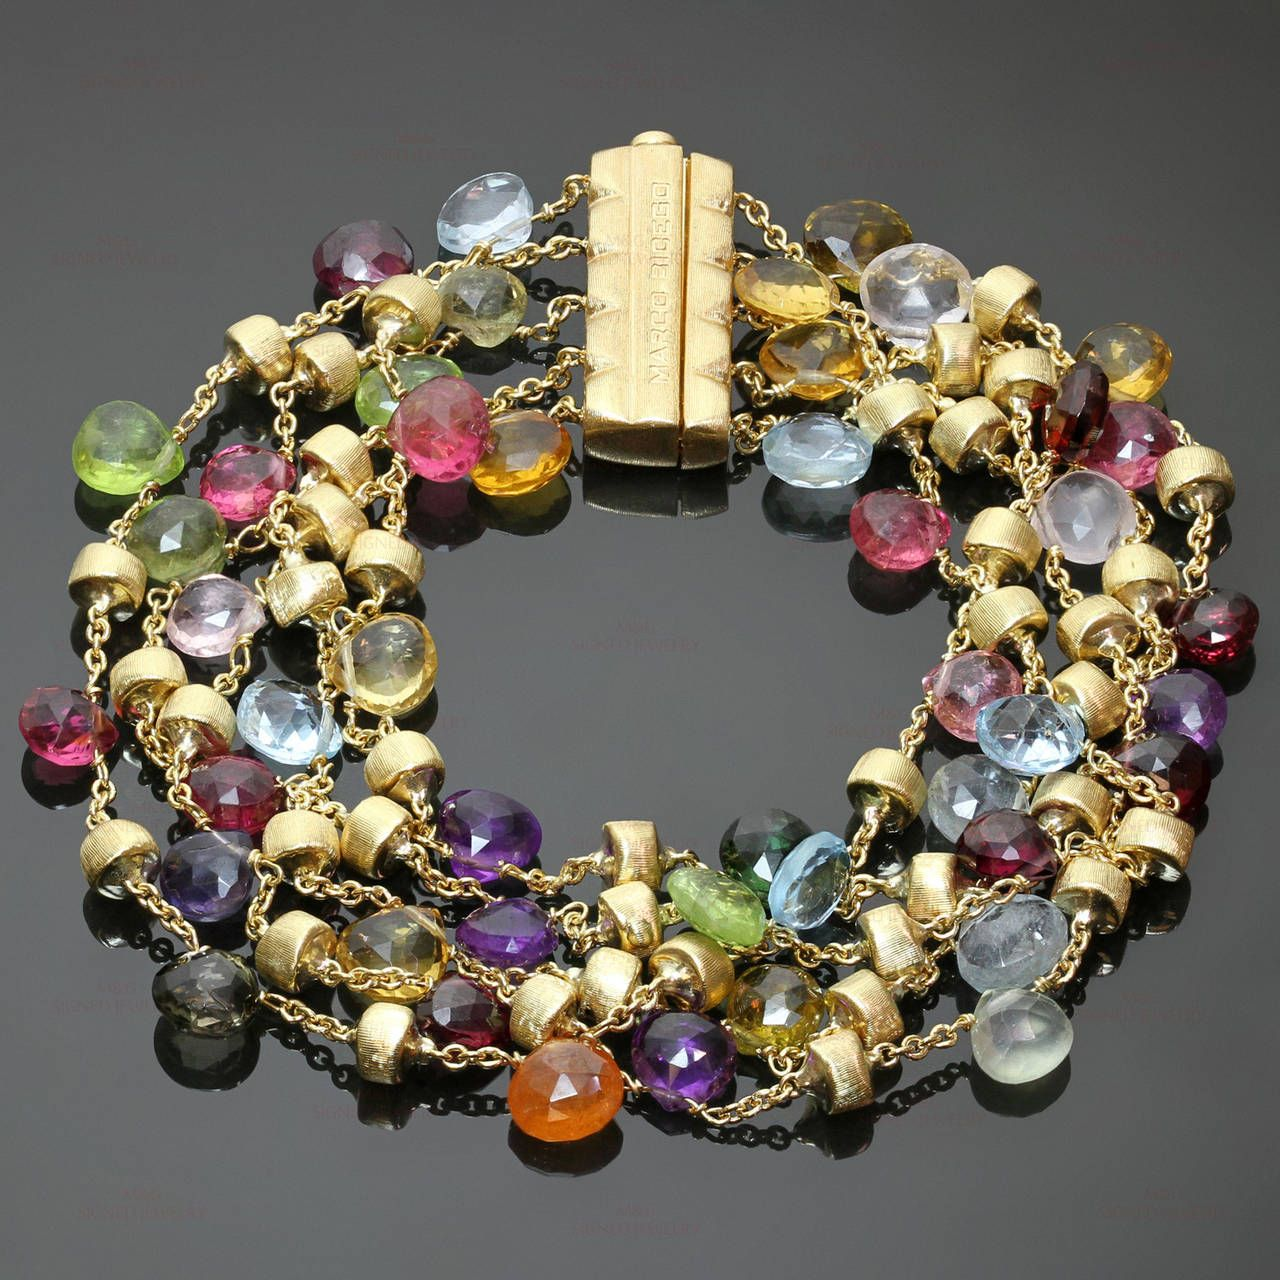 robert bands designs novell multi blog manse wedding aafes bracelet gemstone